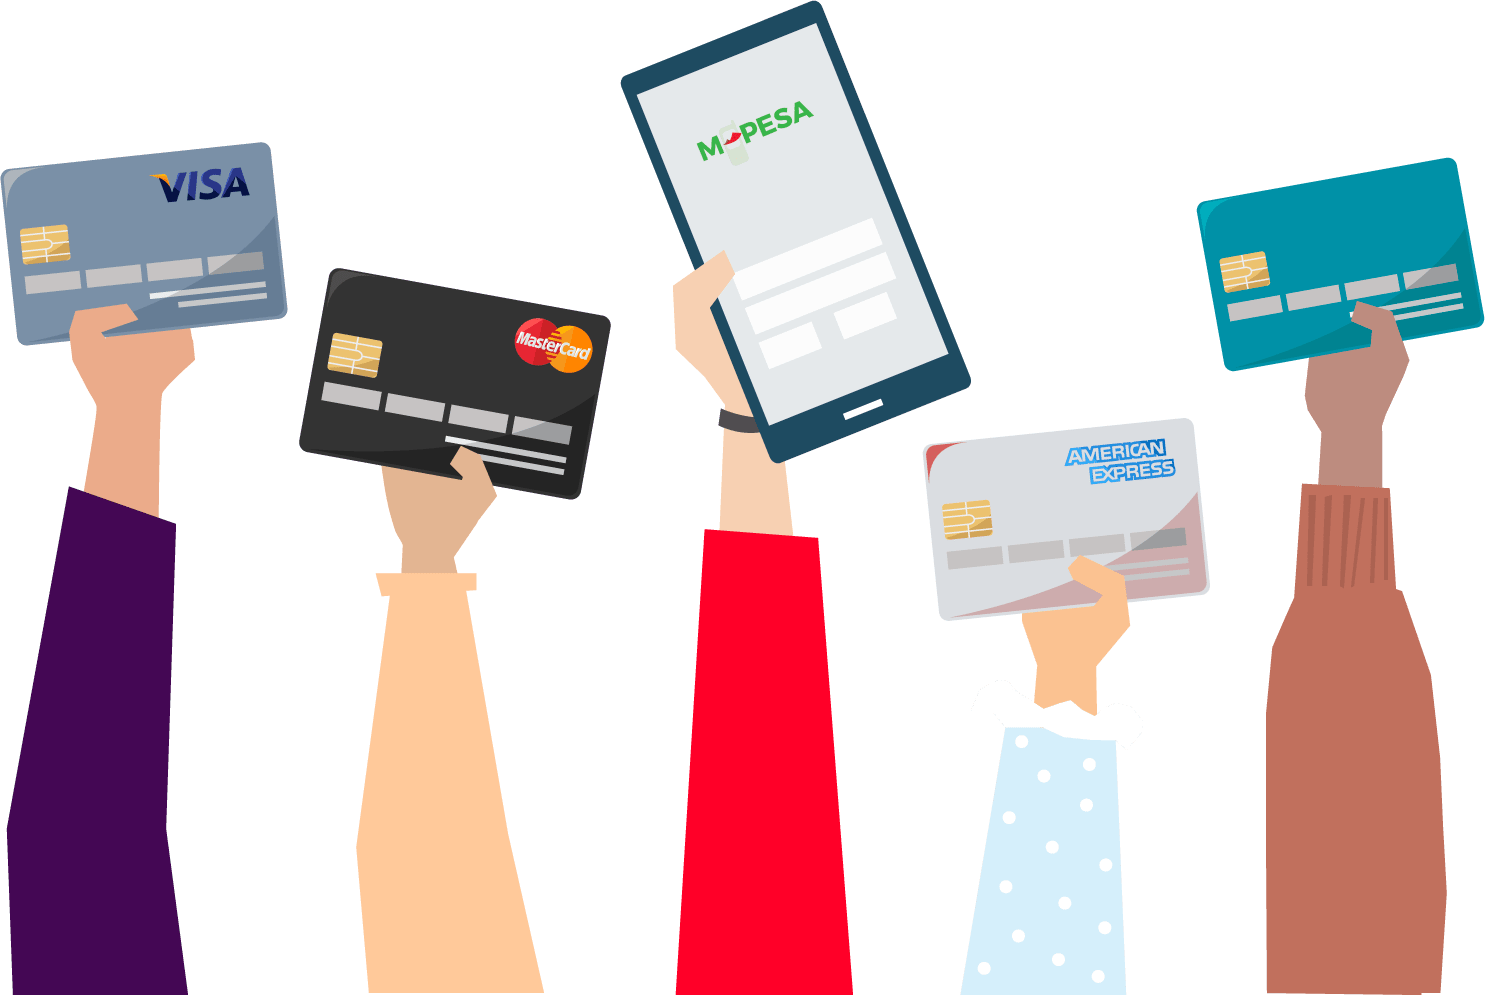 receive online and ecommerce payments across Africa on credit cards, debit cards, mobile money and banks